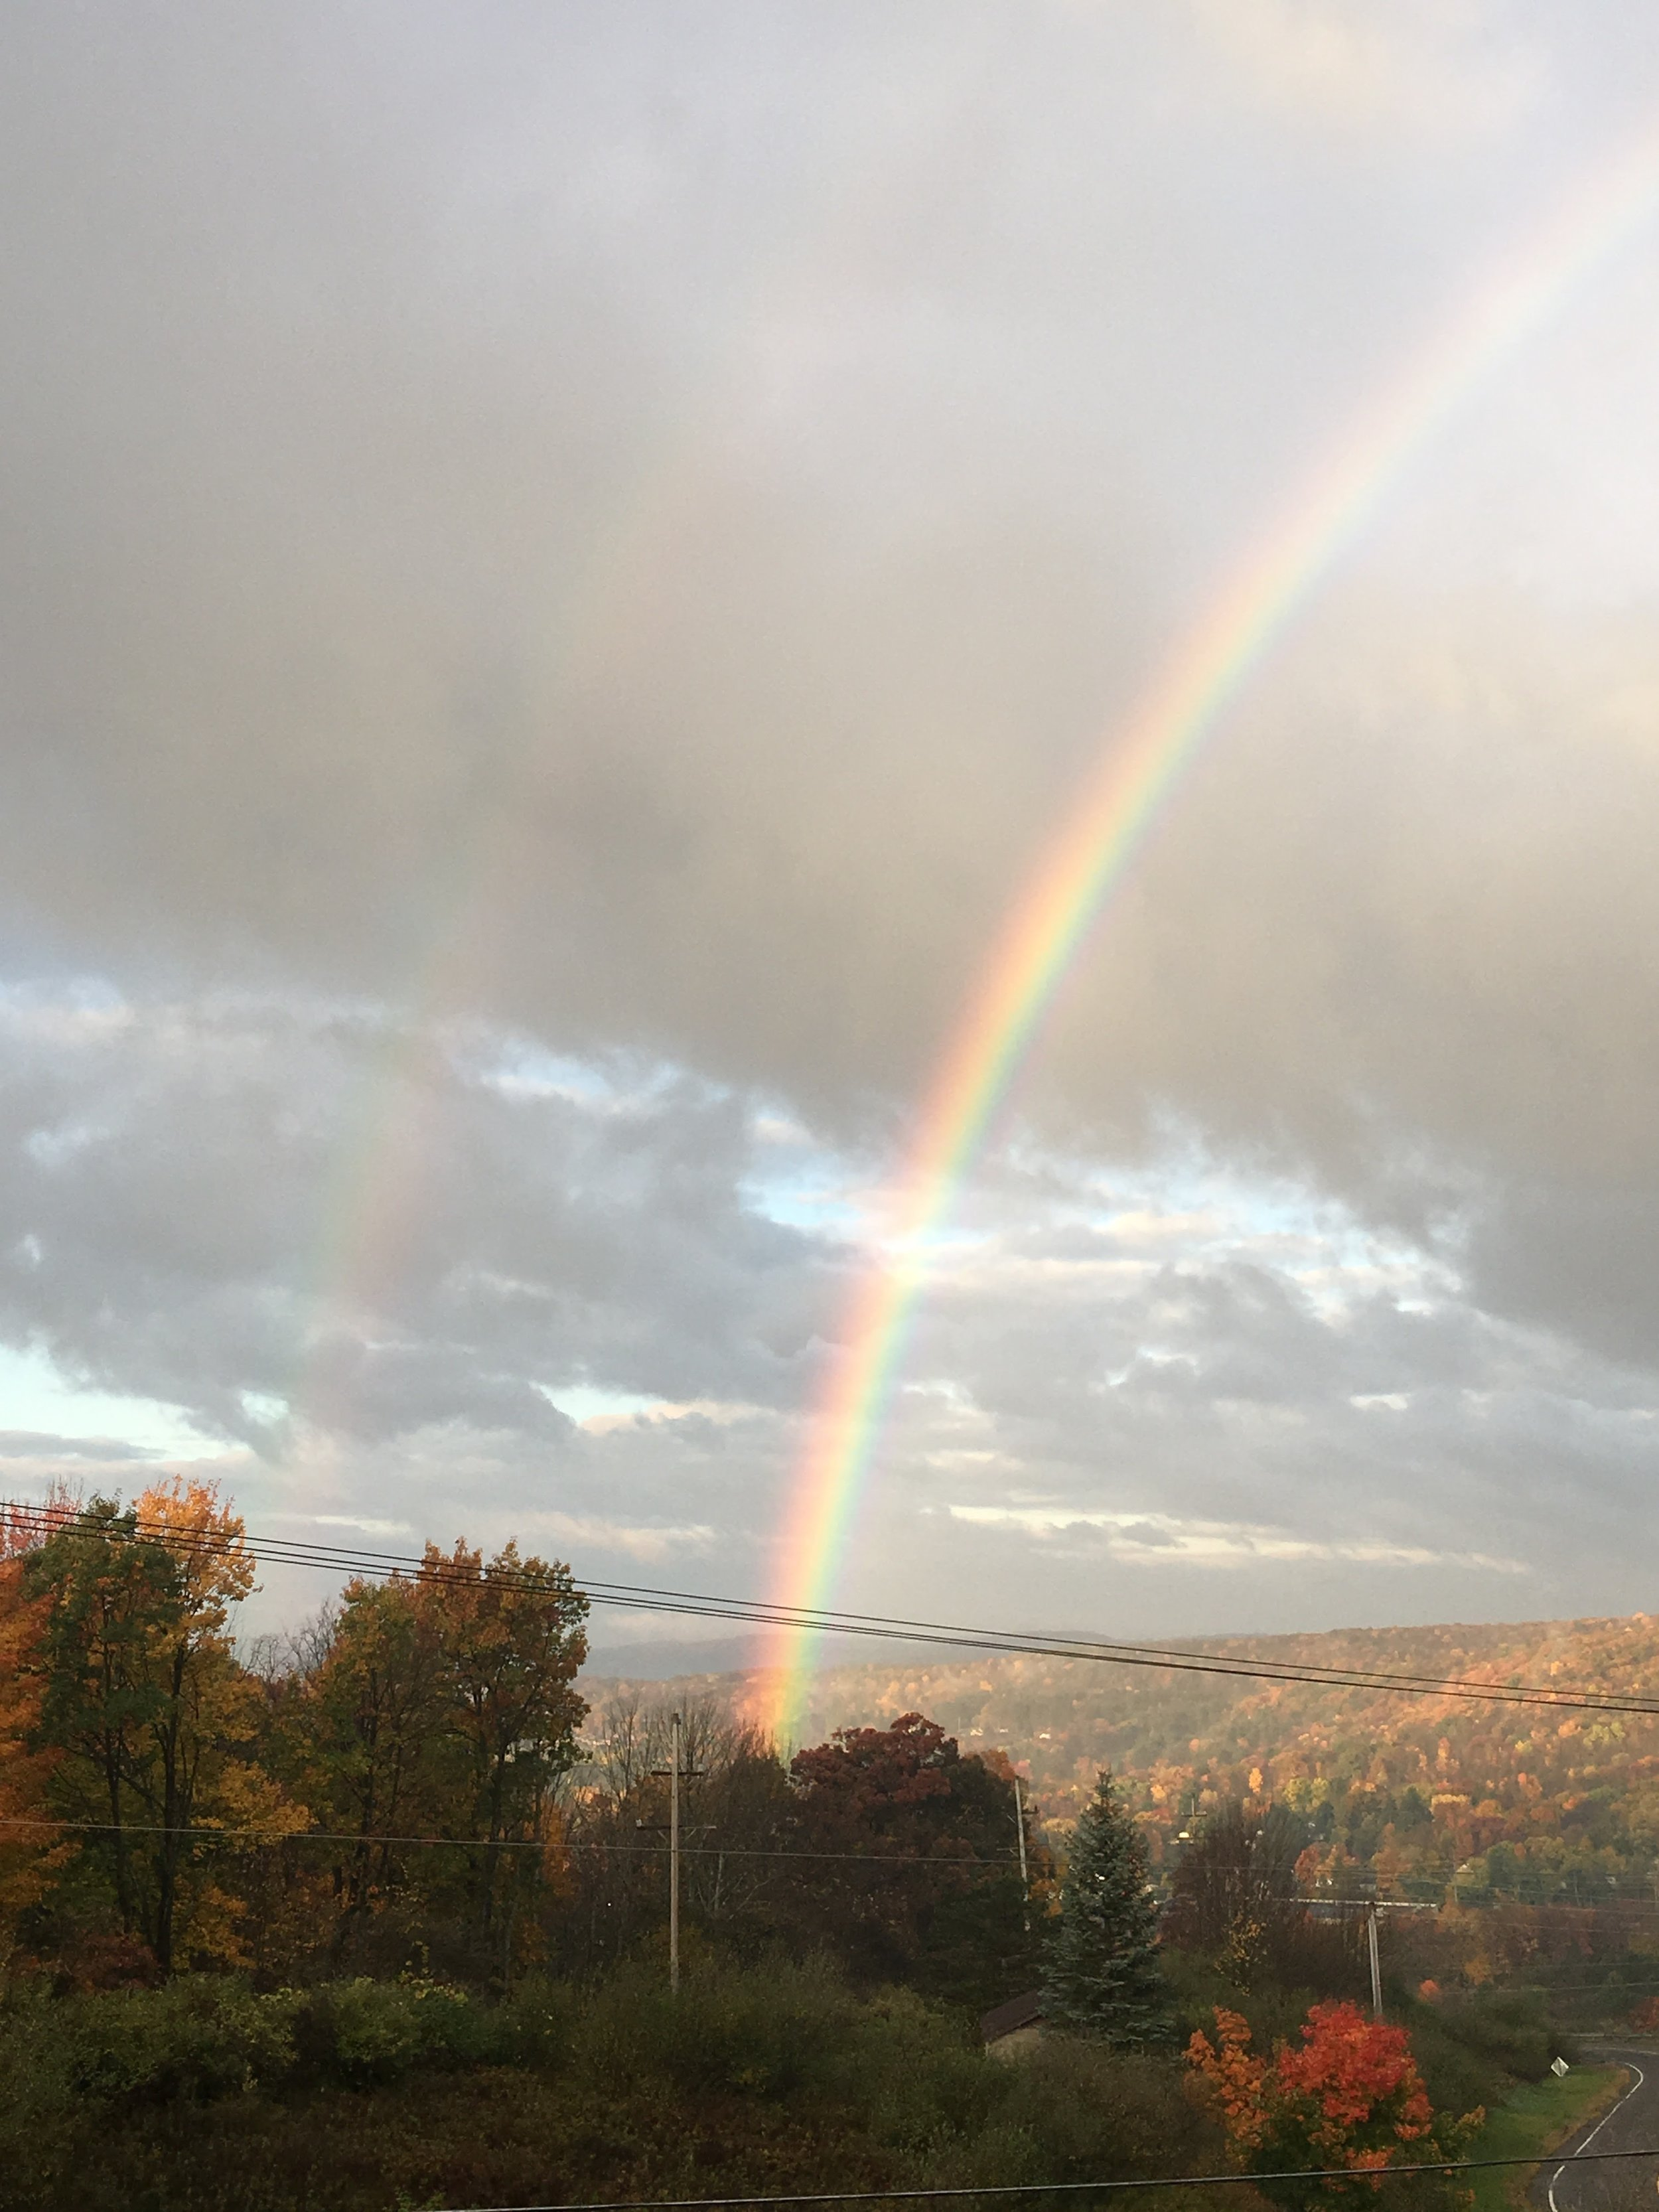 A good sign for our first day in the new office- double rainbow in our new view!